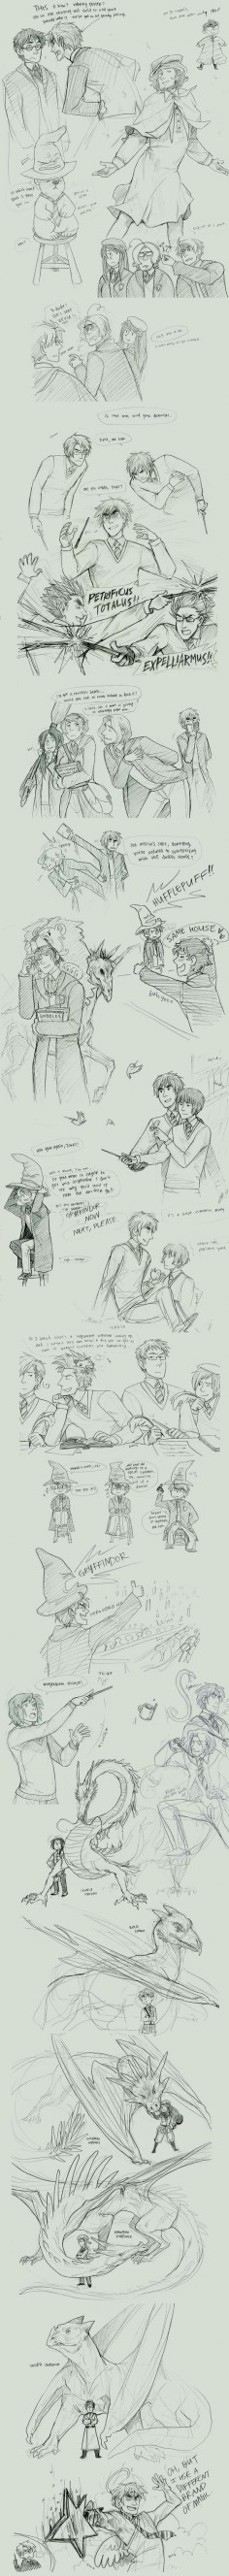 harry potter + the axis powers by ~Blue-Fox THIS IS AWSOME!- I died at Alfred trying to shoot the sorting hat